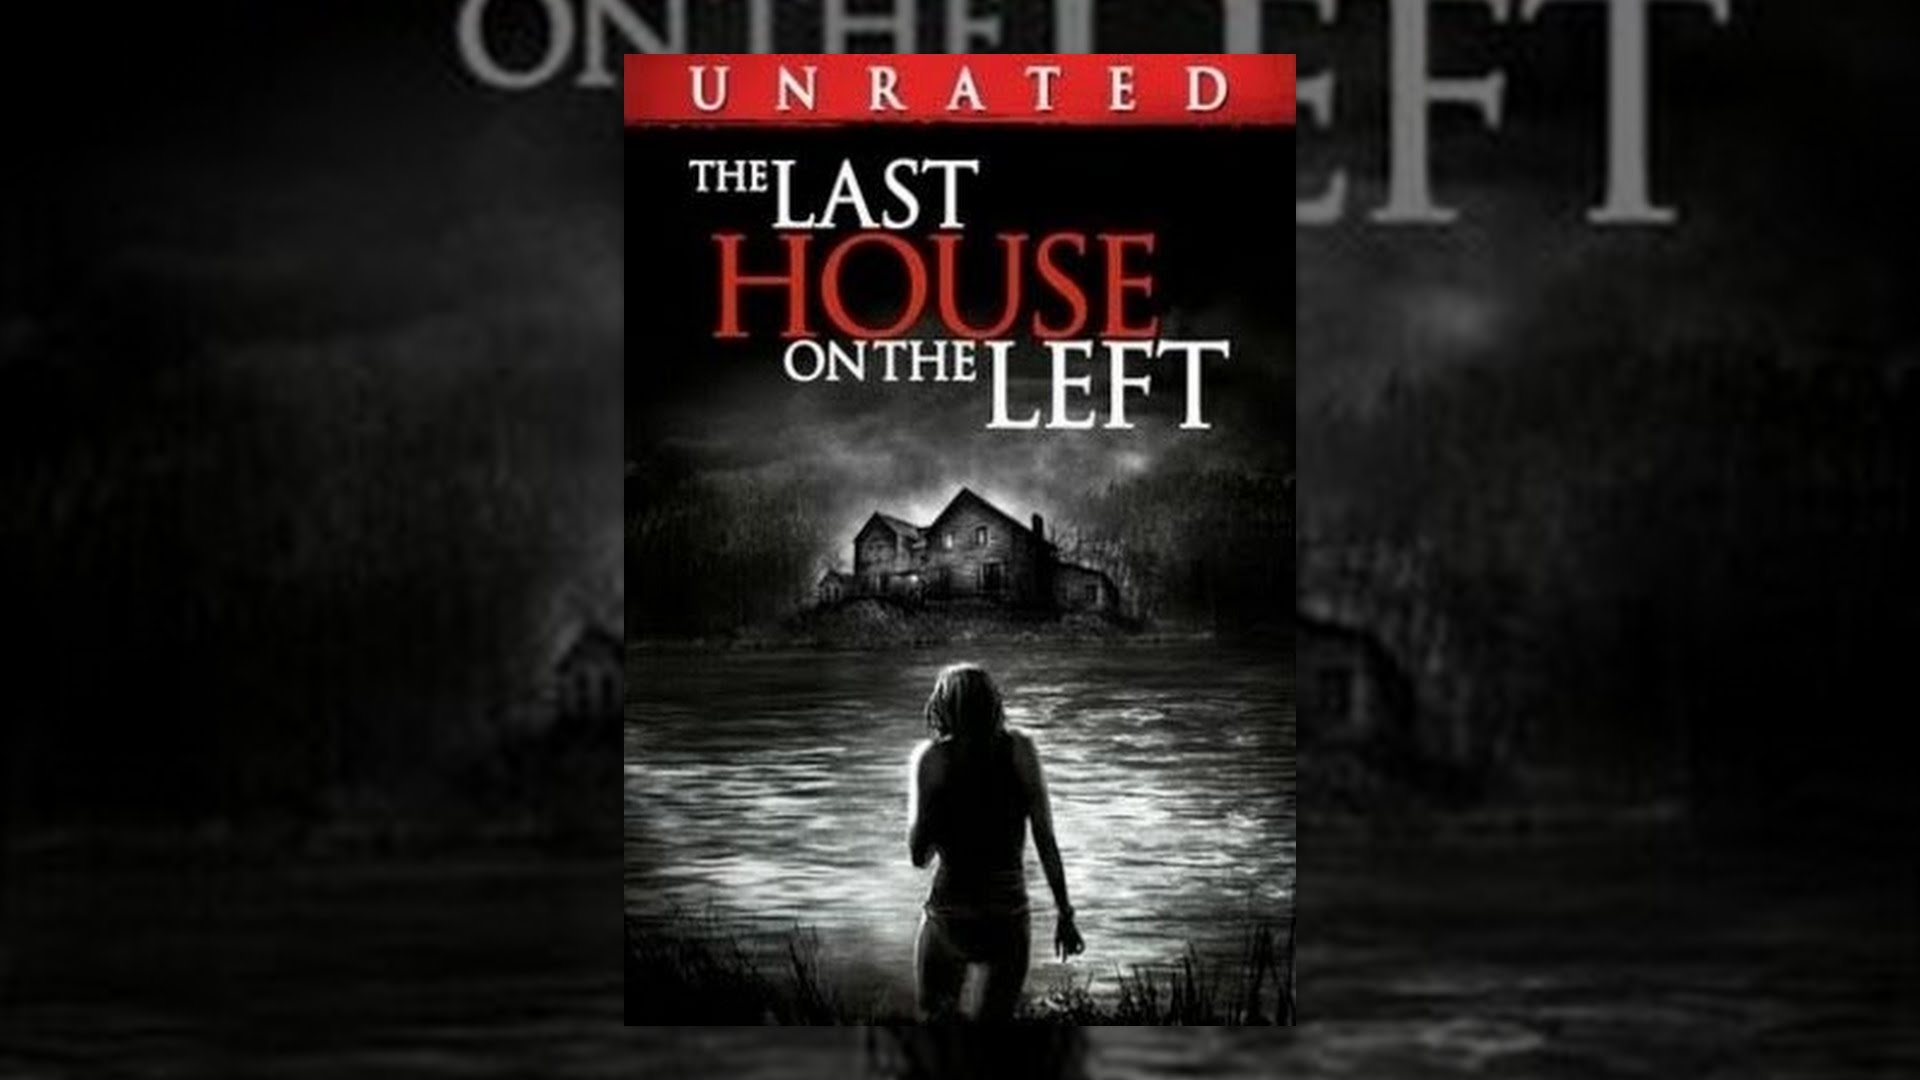 the last house on the left (unrated) - youtube